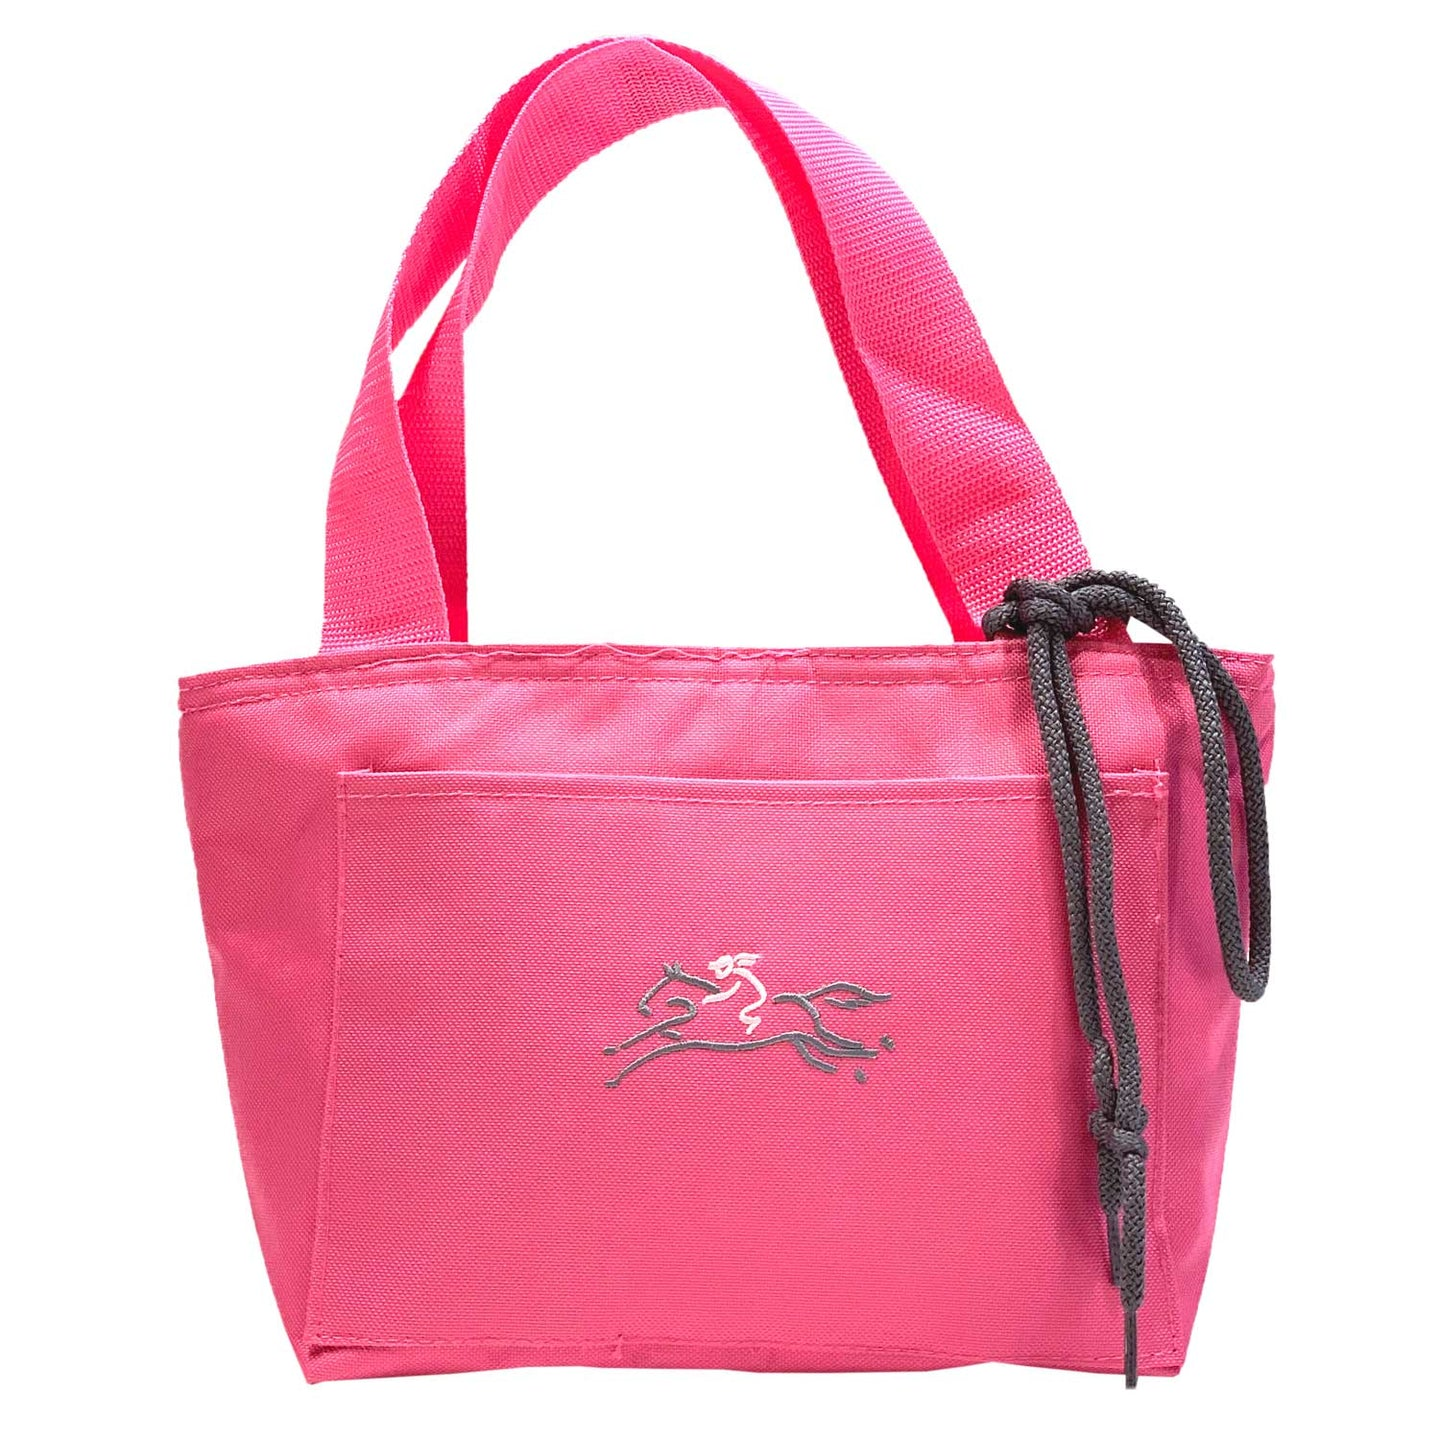 Girl On Horse Lunch Tote B884